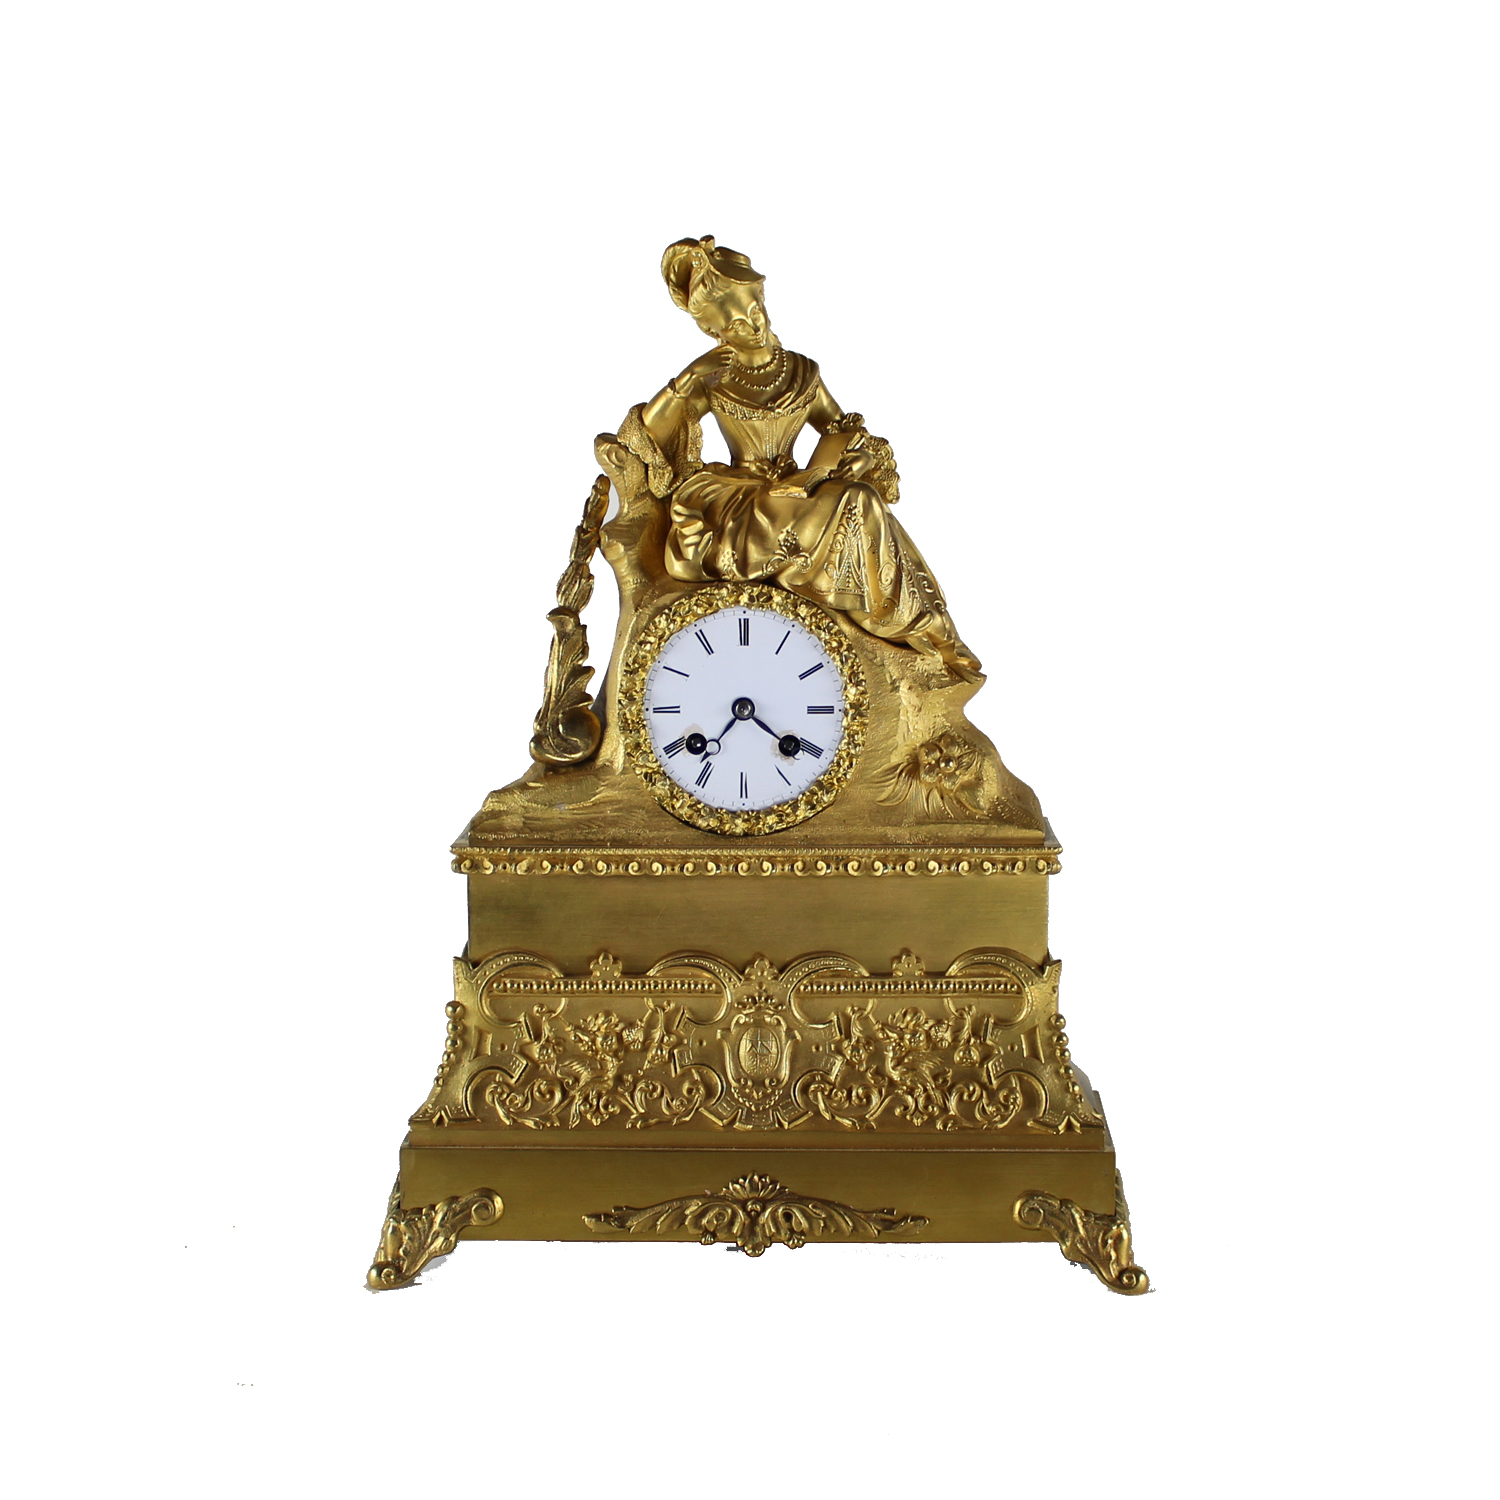 French Ormolu Clock Depicting a Lady in Court Dress Reading a Book, Circa 1860